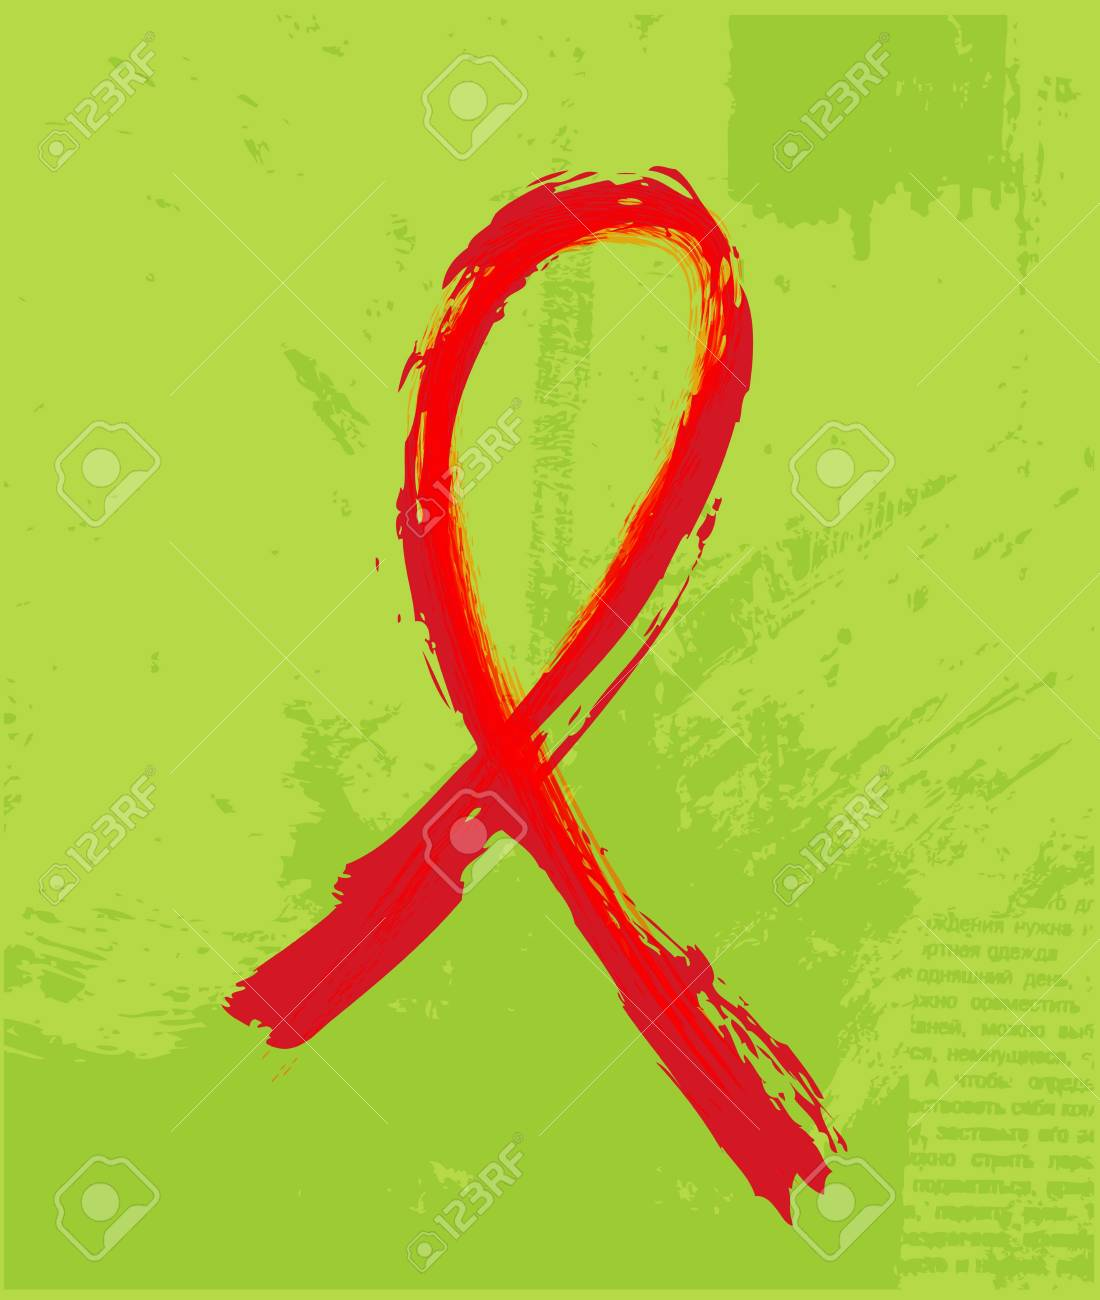 Red Support Ribbon on the grunge background Stock Photo - 14276253